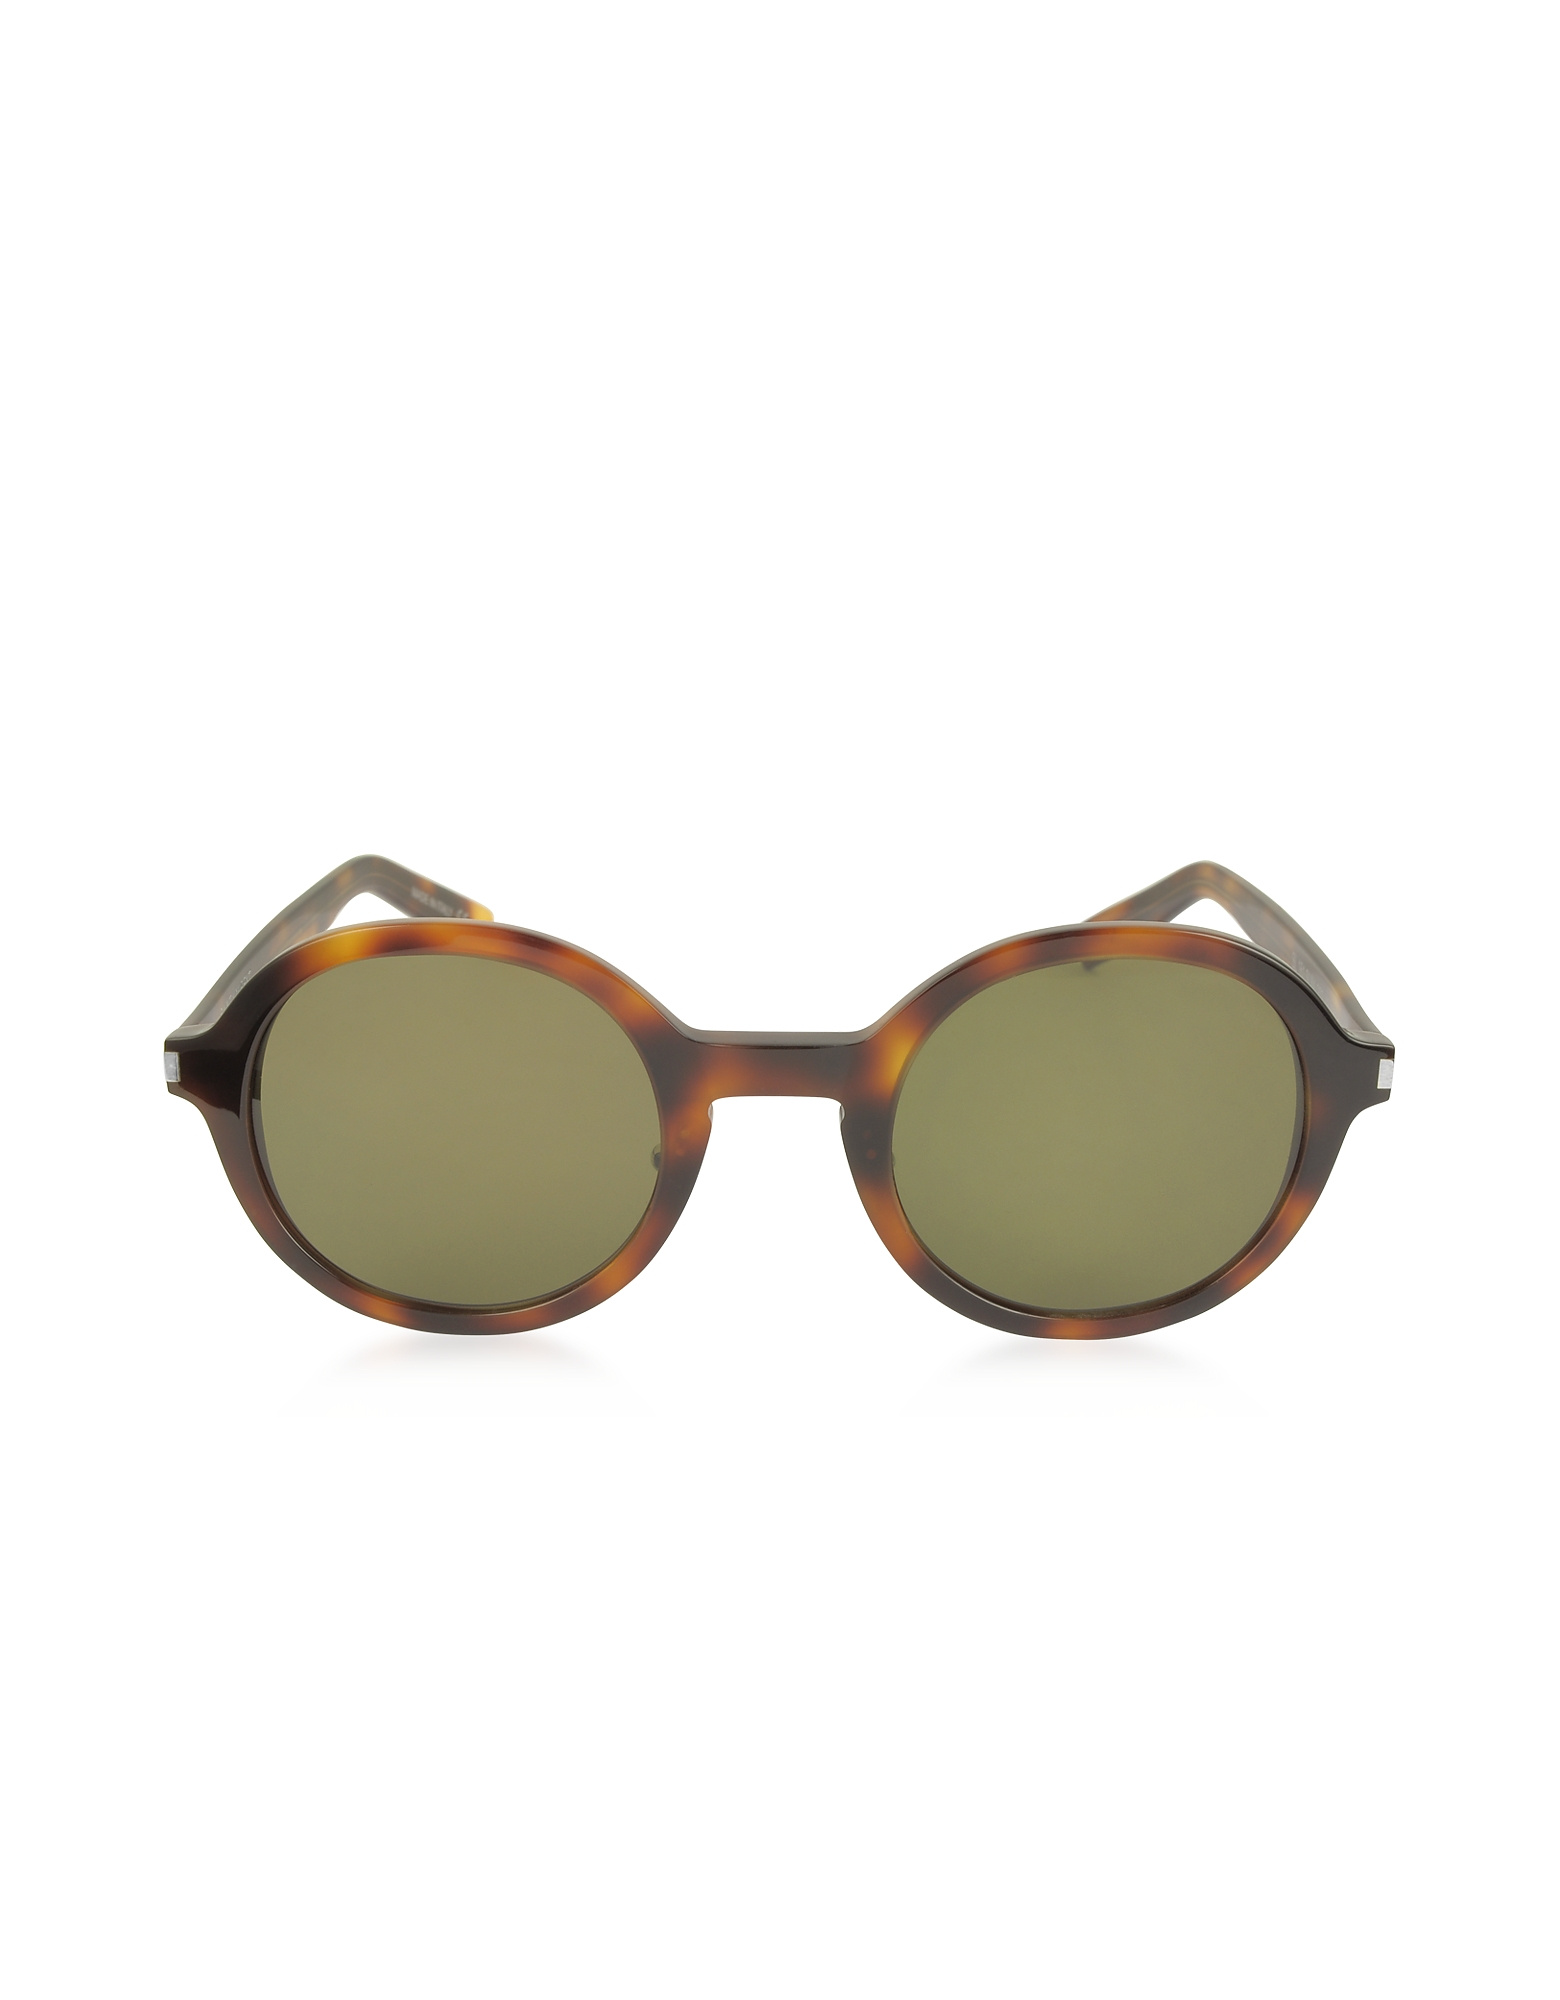 Saint Laurent Sunglasses, SL 161 Slim Acetate Round-Frame Unisex Sunglasses